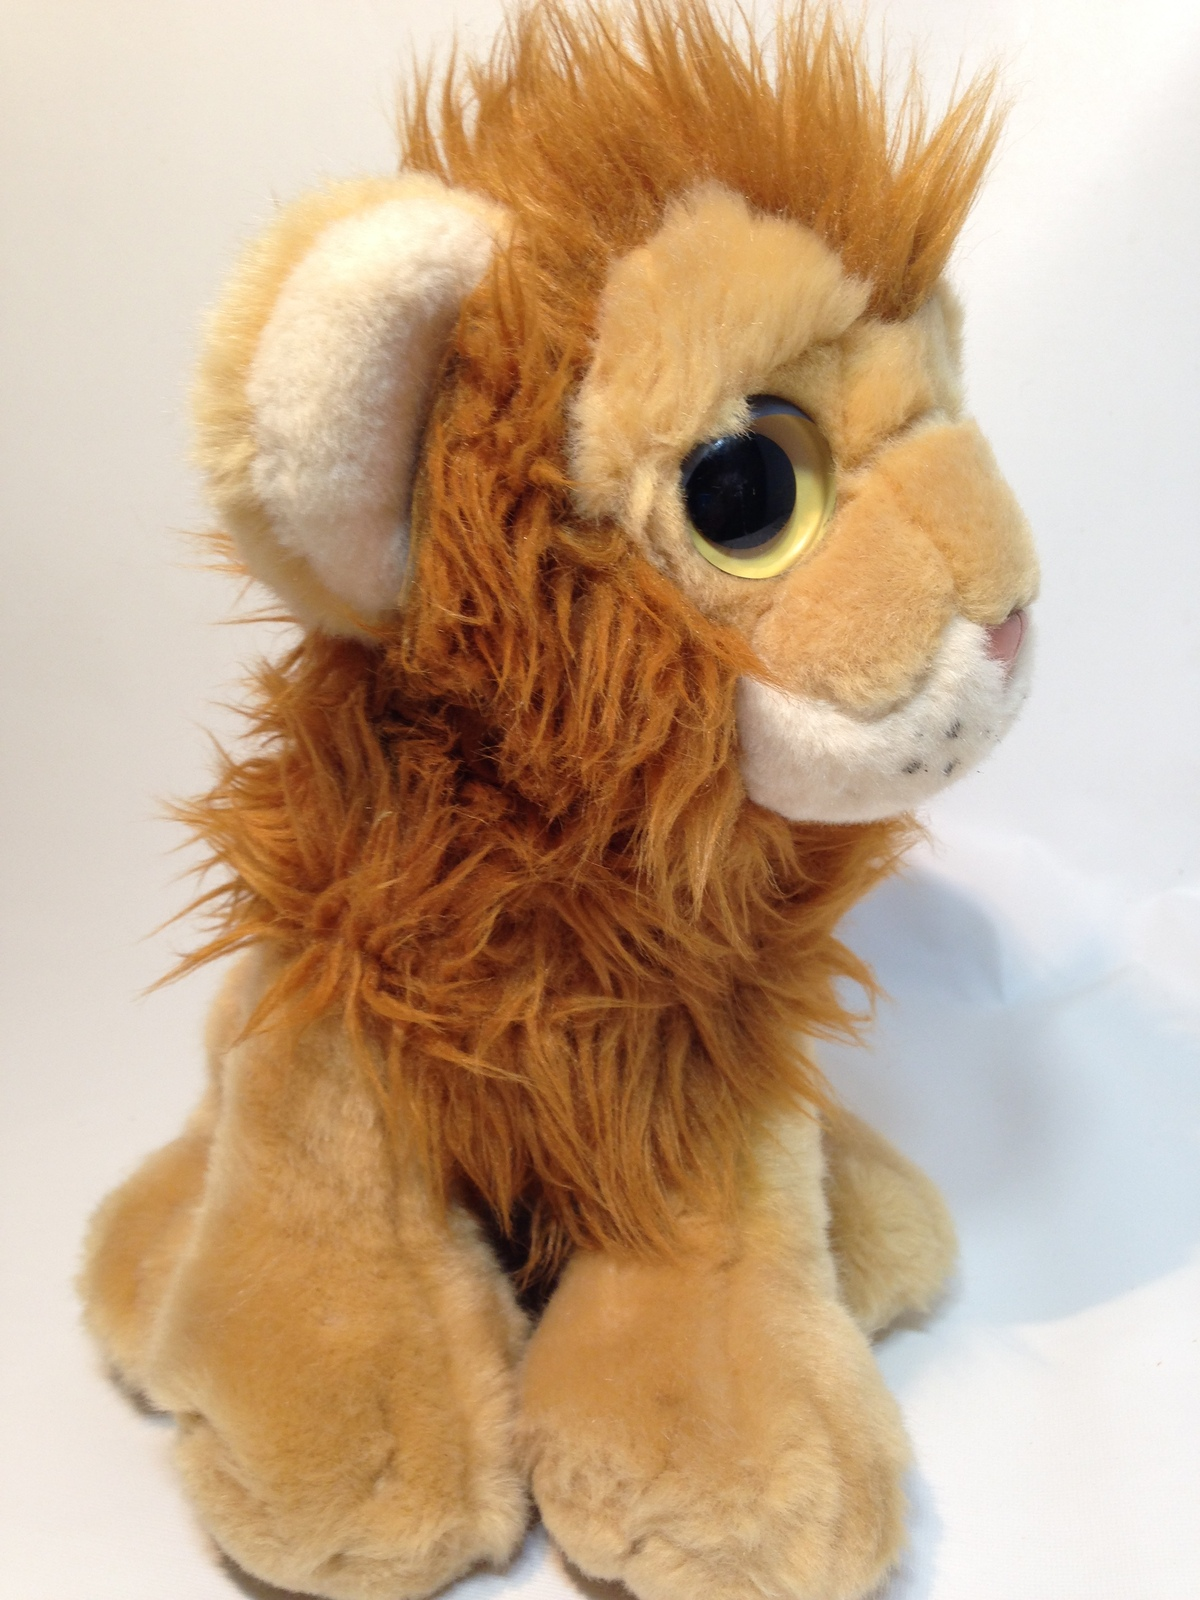 b3ca27ad12d Ty Kingston Lion Plush Wild Wild West Classic Cat Brown Stuffed Animal Toy  2011